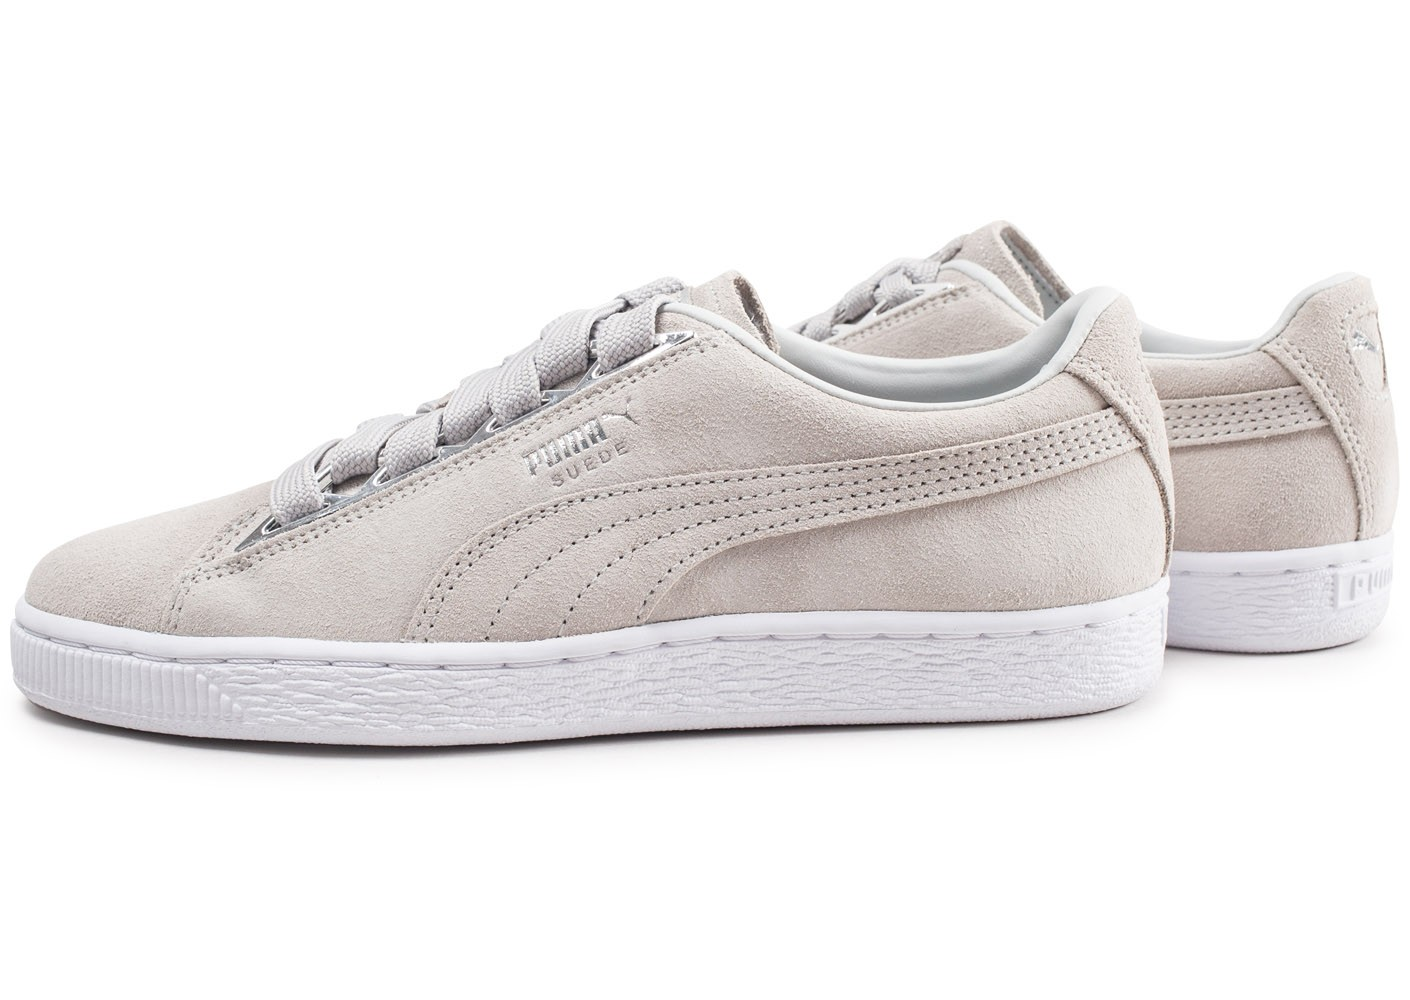 Suede Femme Chaussures Metallic Puma Grise Jewel Baskets thdQxBorCs